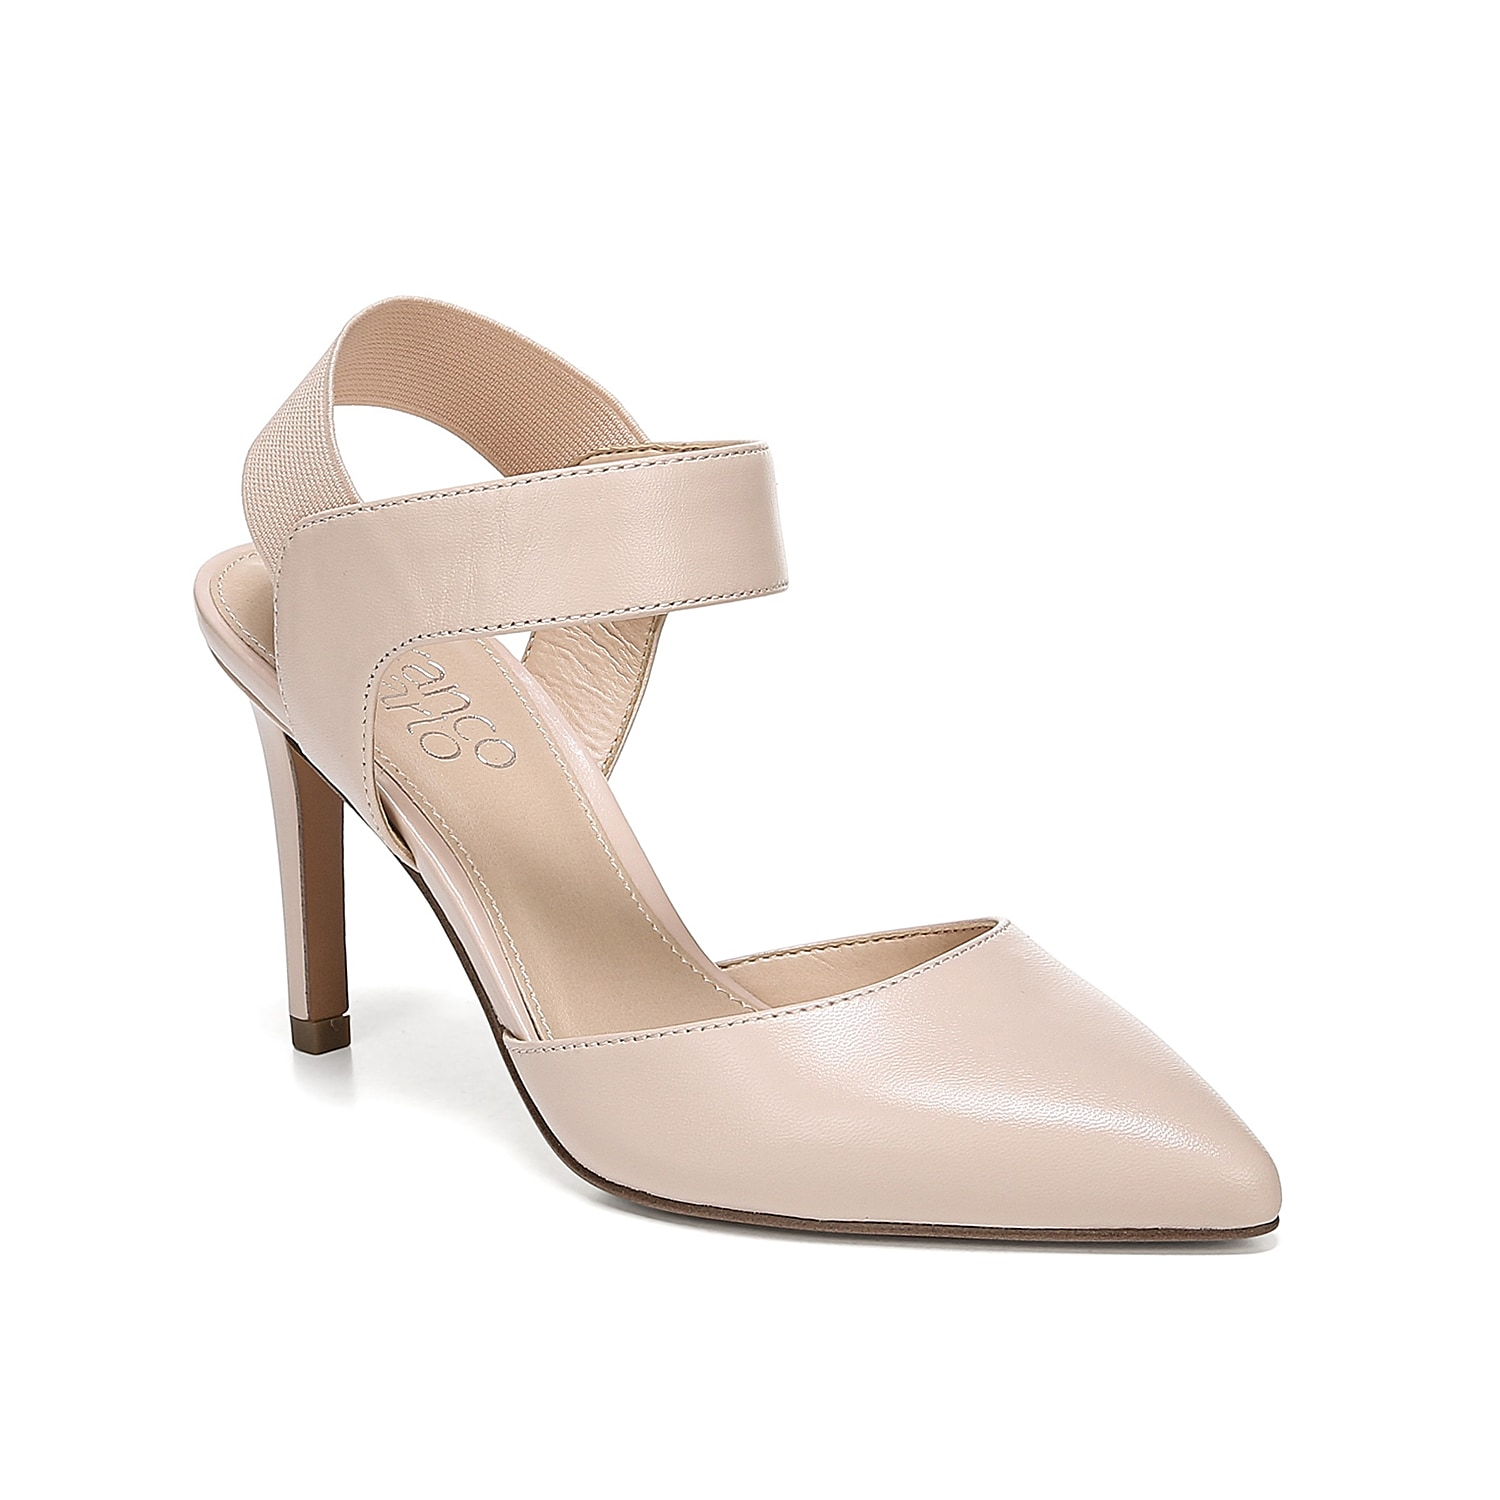 The Lima sandal from Franco Sarto is anything but ordinary! This pointed toe pair features an elastic slingback strap for a comfortable fit and is backed with a leather construction that makes any outfit pop.